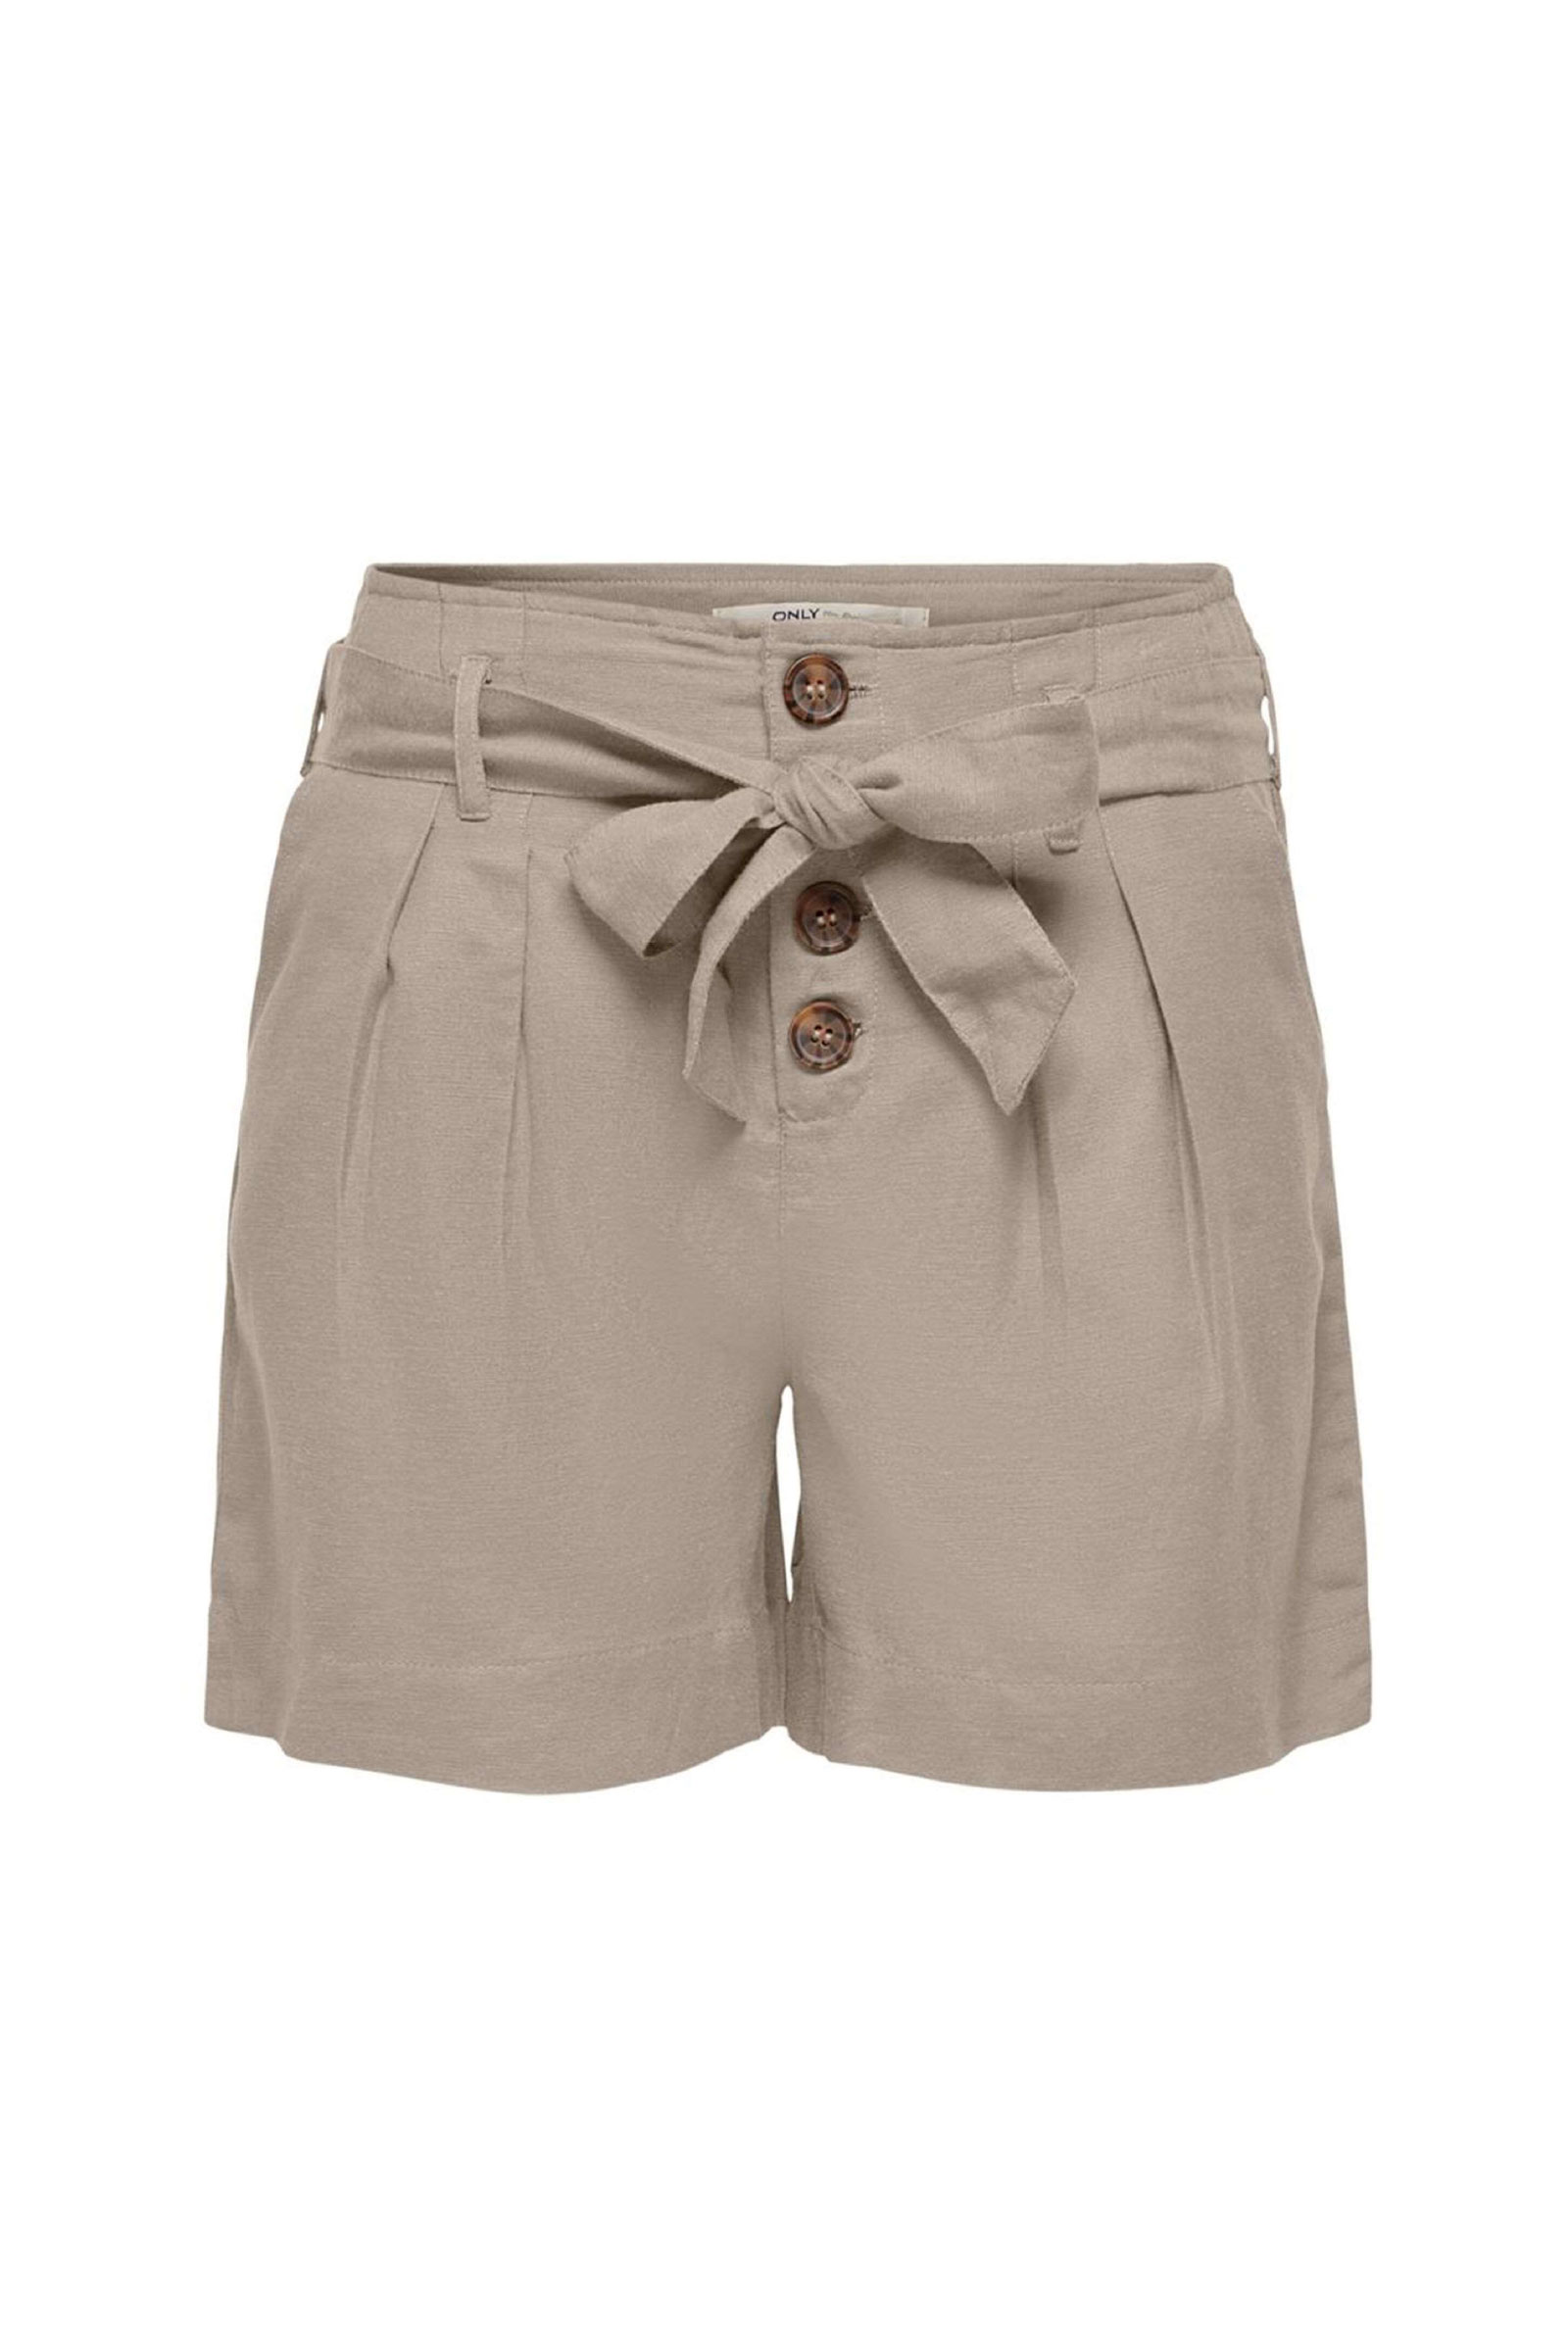 ONLY Shorts Donna ONLY | Shorts | 15199801Pure Cashmere